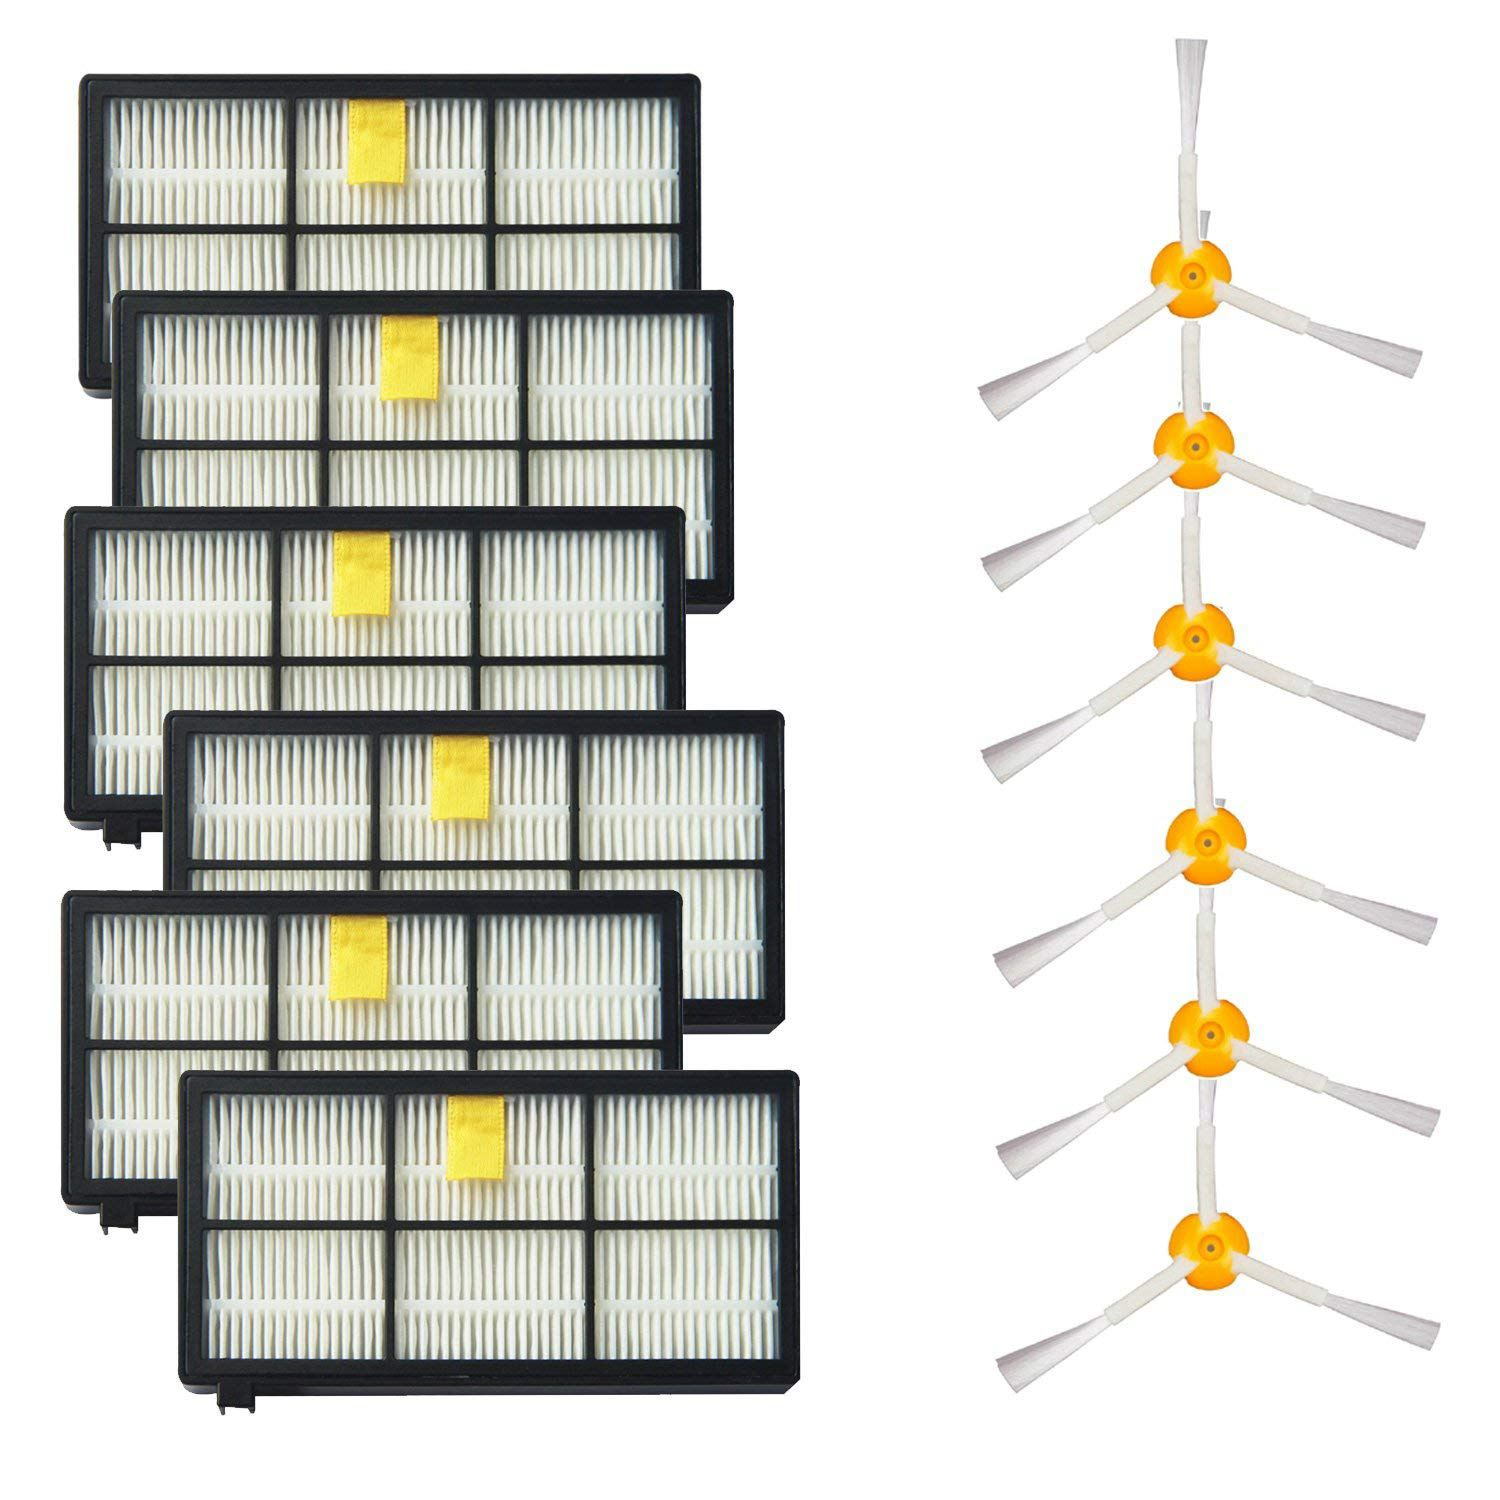 3 Side Brushes and 6 HEPA Filters Replacement For iRobot Roomba 800 900 Series 805 860 870 871 880 890 960 980 Robotic Vacuum 14pcs lot tangle free debris extractor replacement kit for irobot roomba 800 900 series 870 880 980 vacuum robots accessory pa